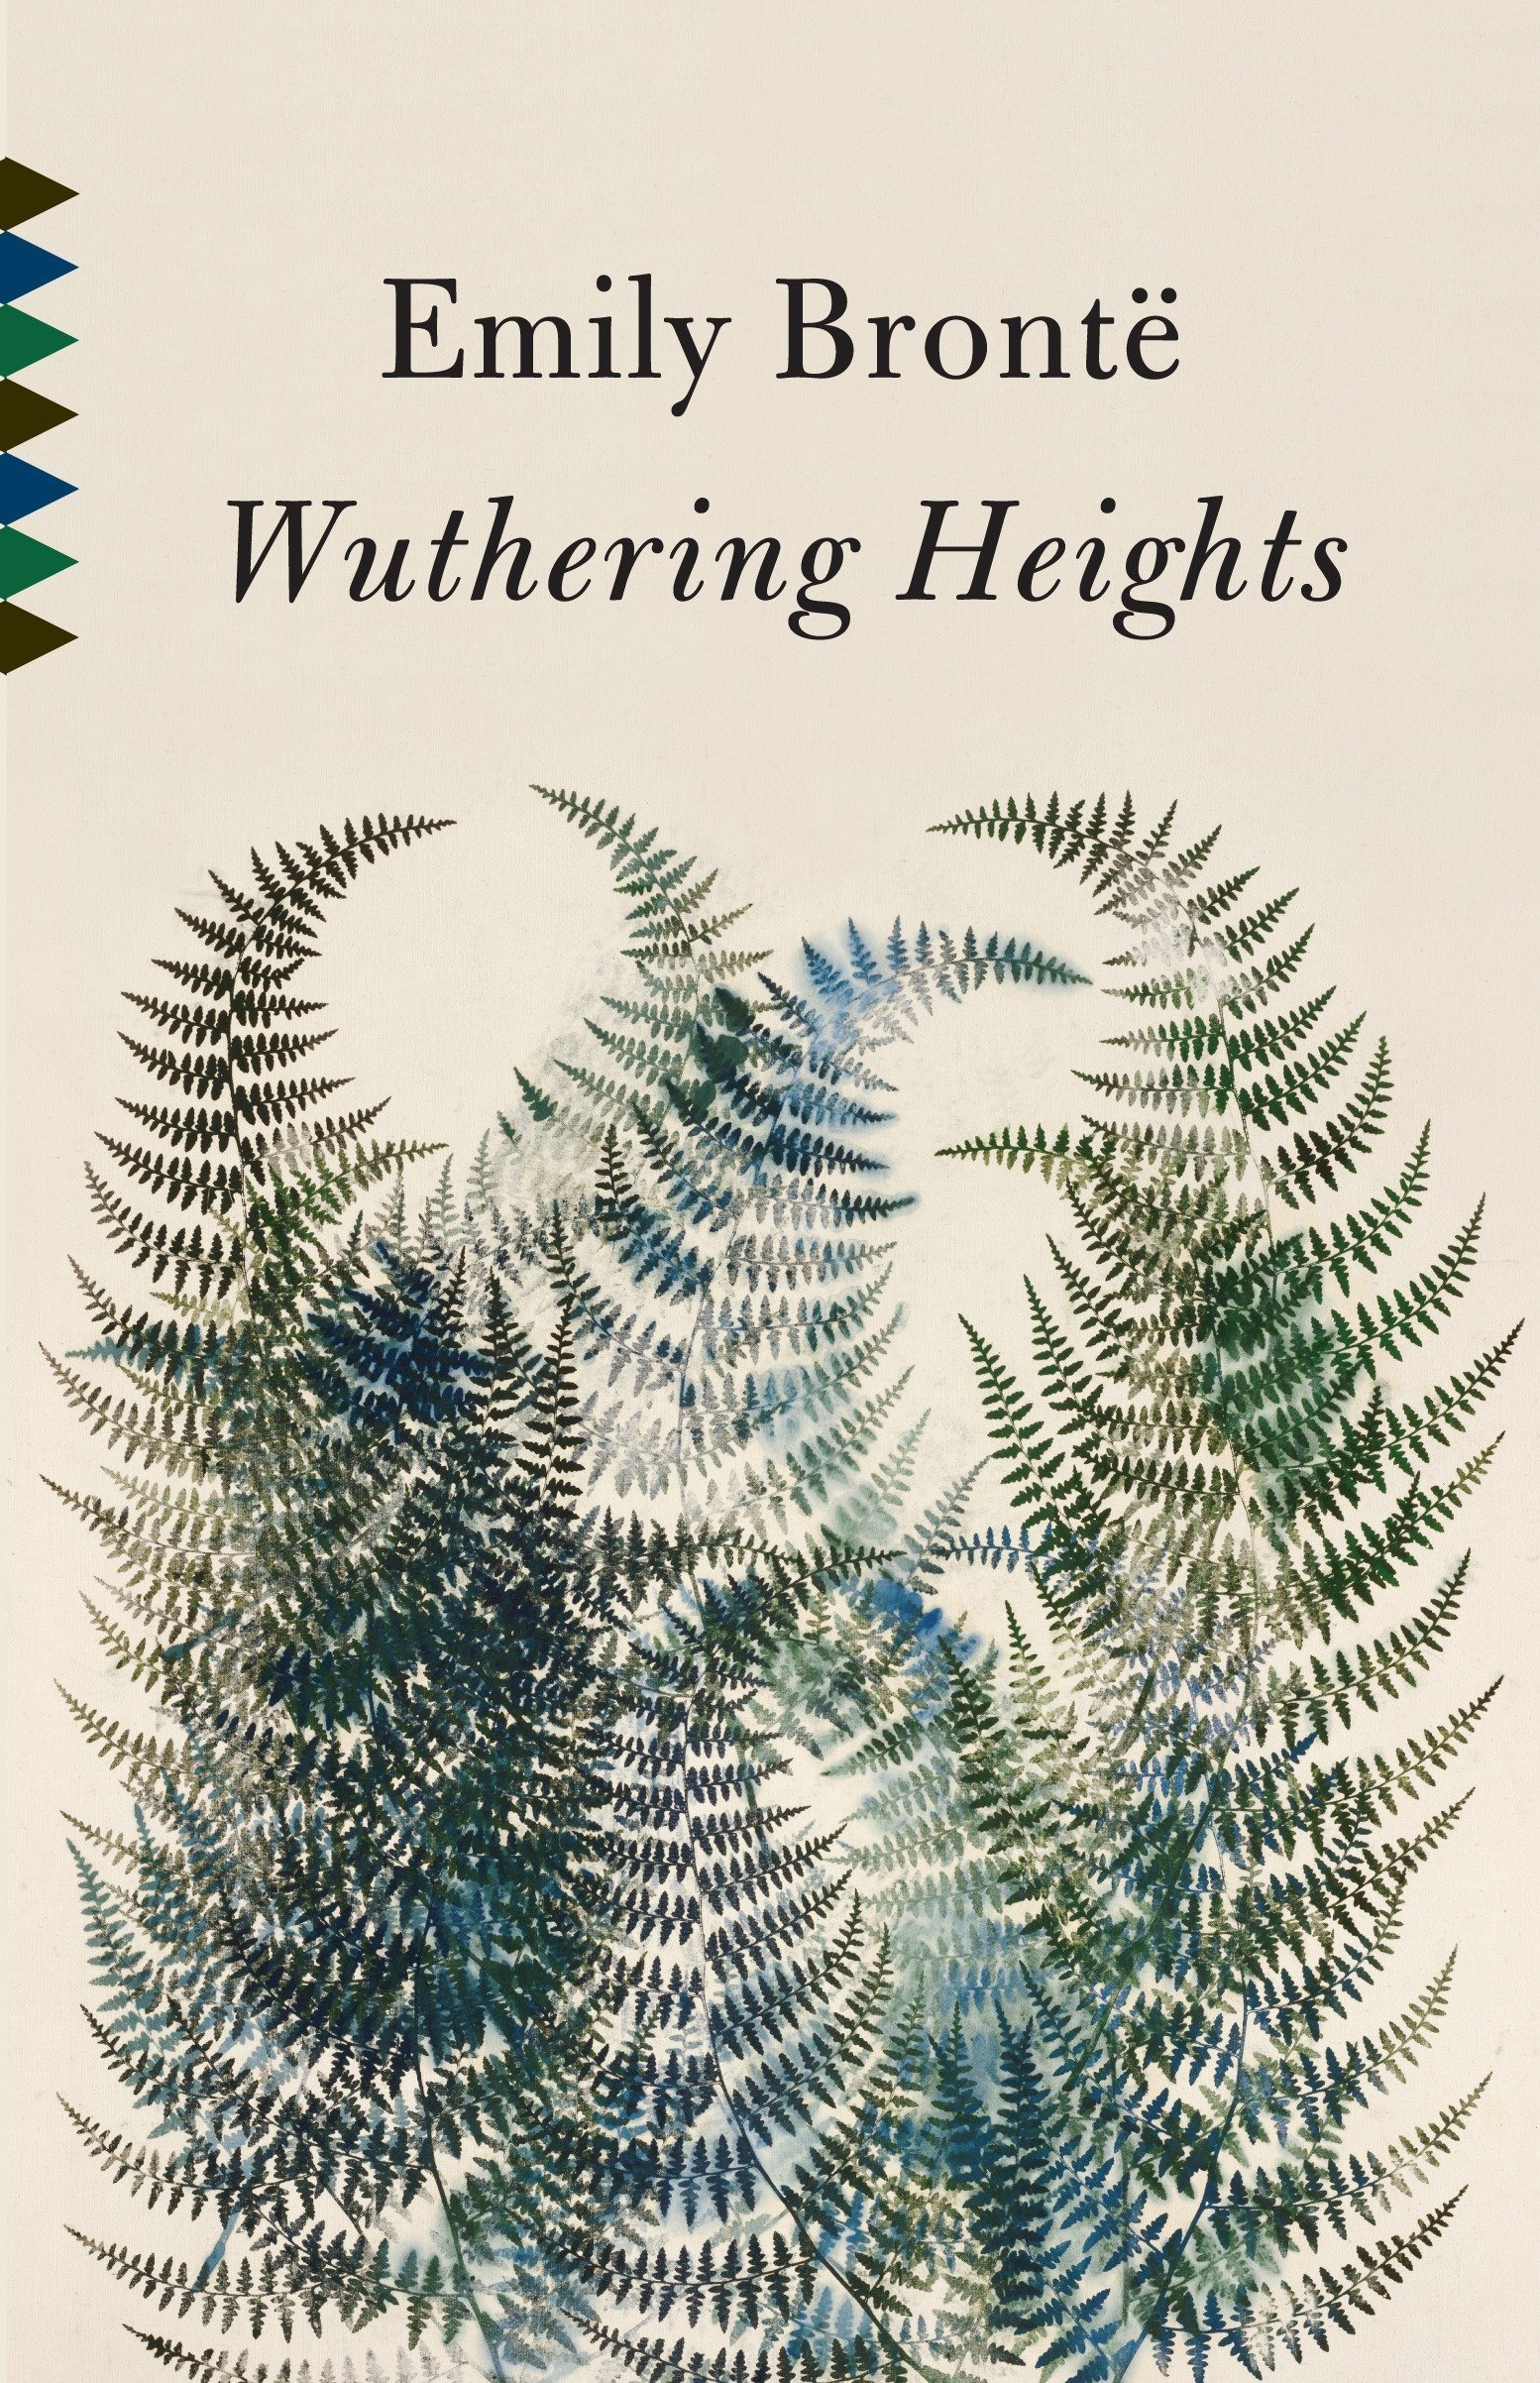 Wuthering Heights (Vintage Classics) ebook